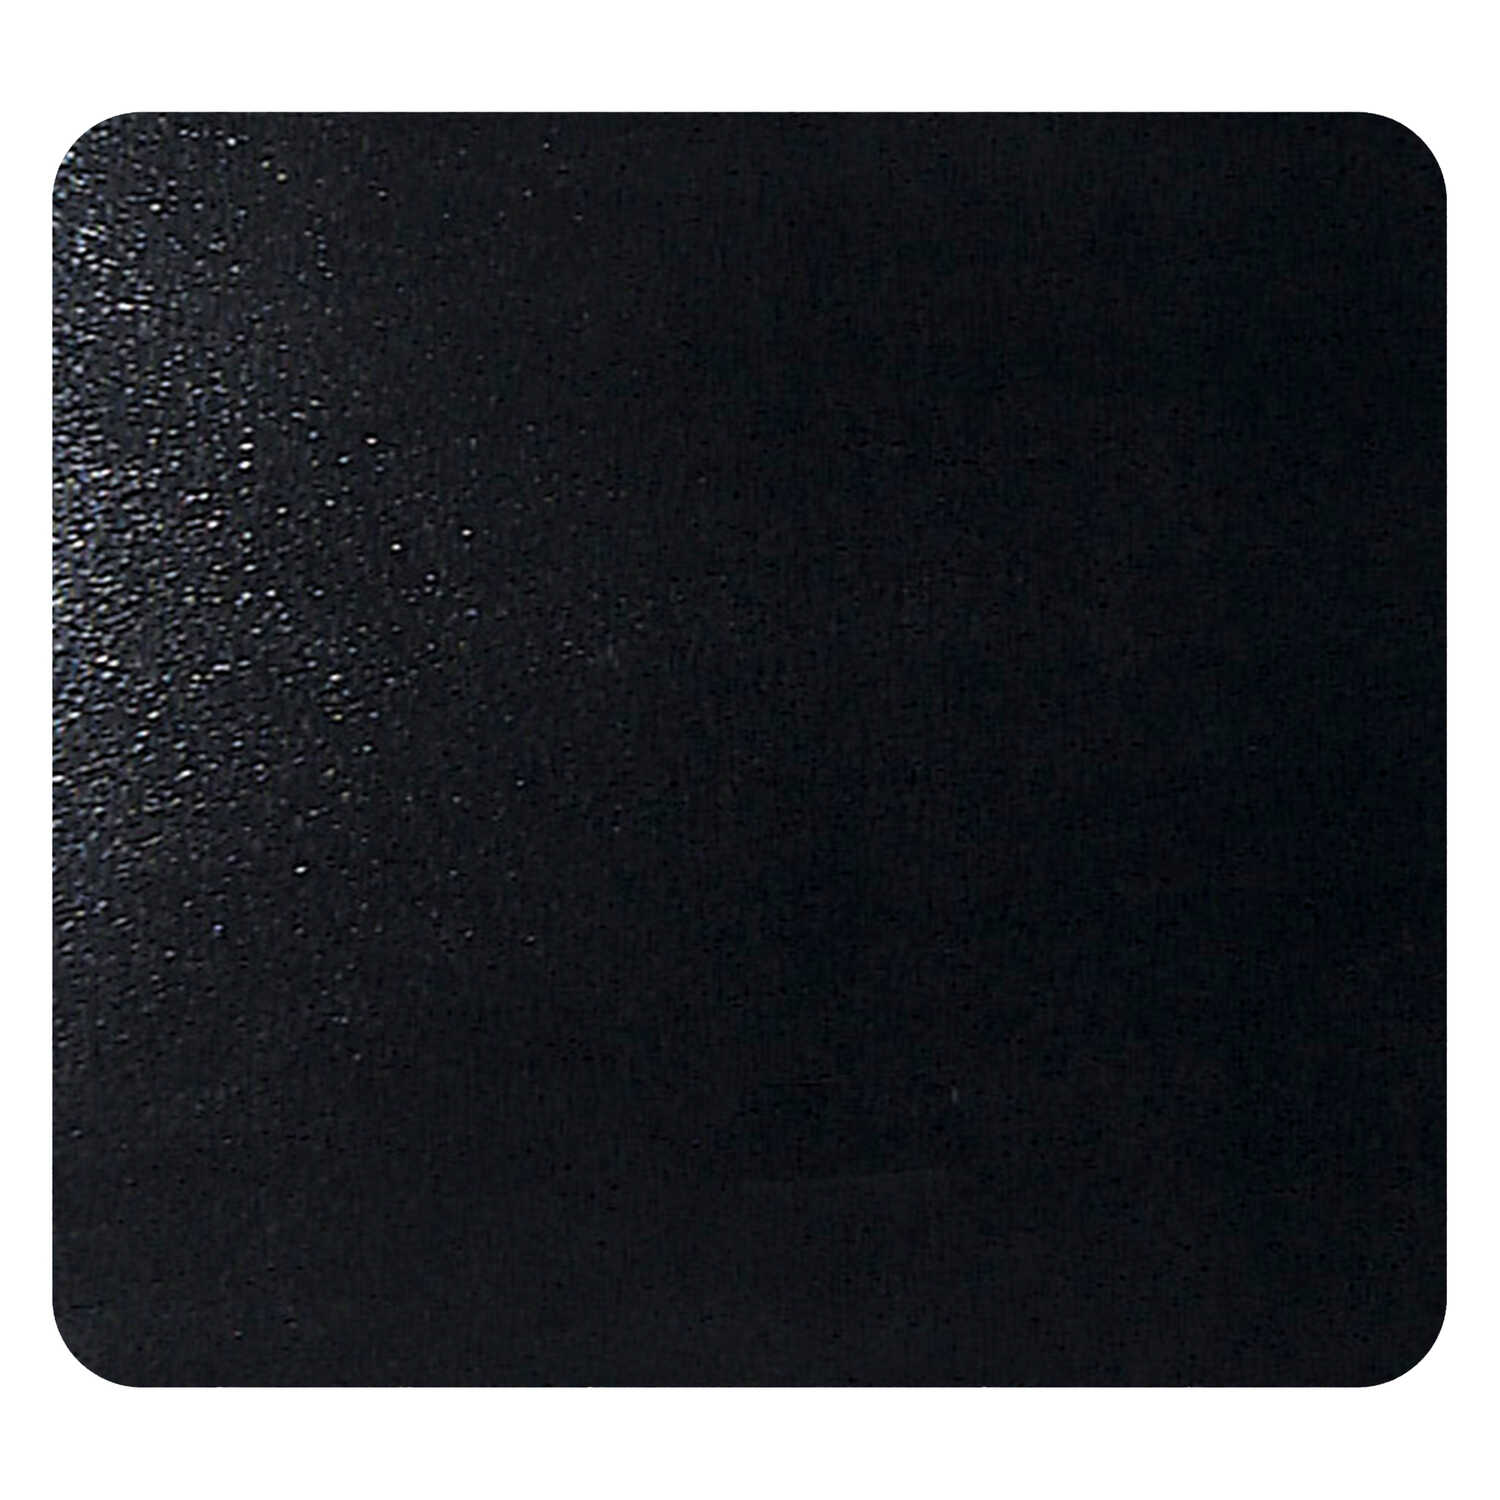 Imperial Manufacturing  32 in. W x 28 in. L Black  Stove Board